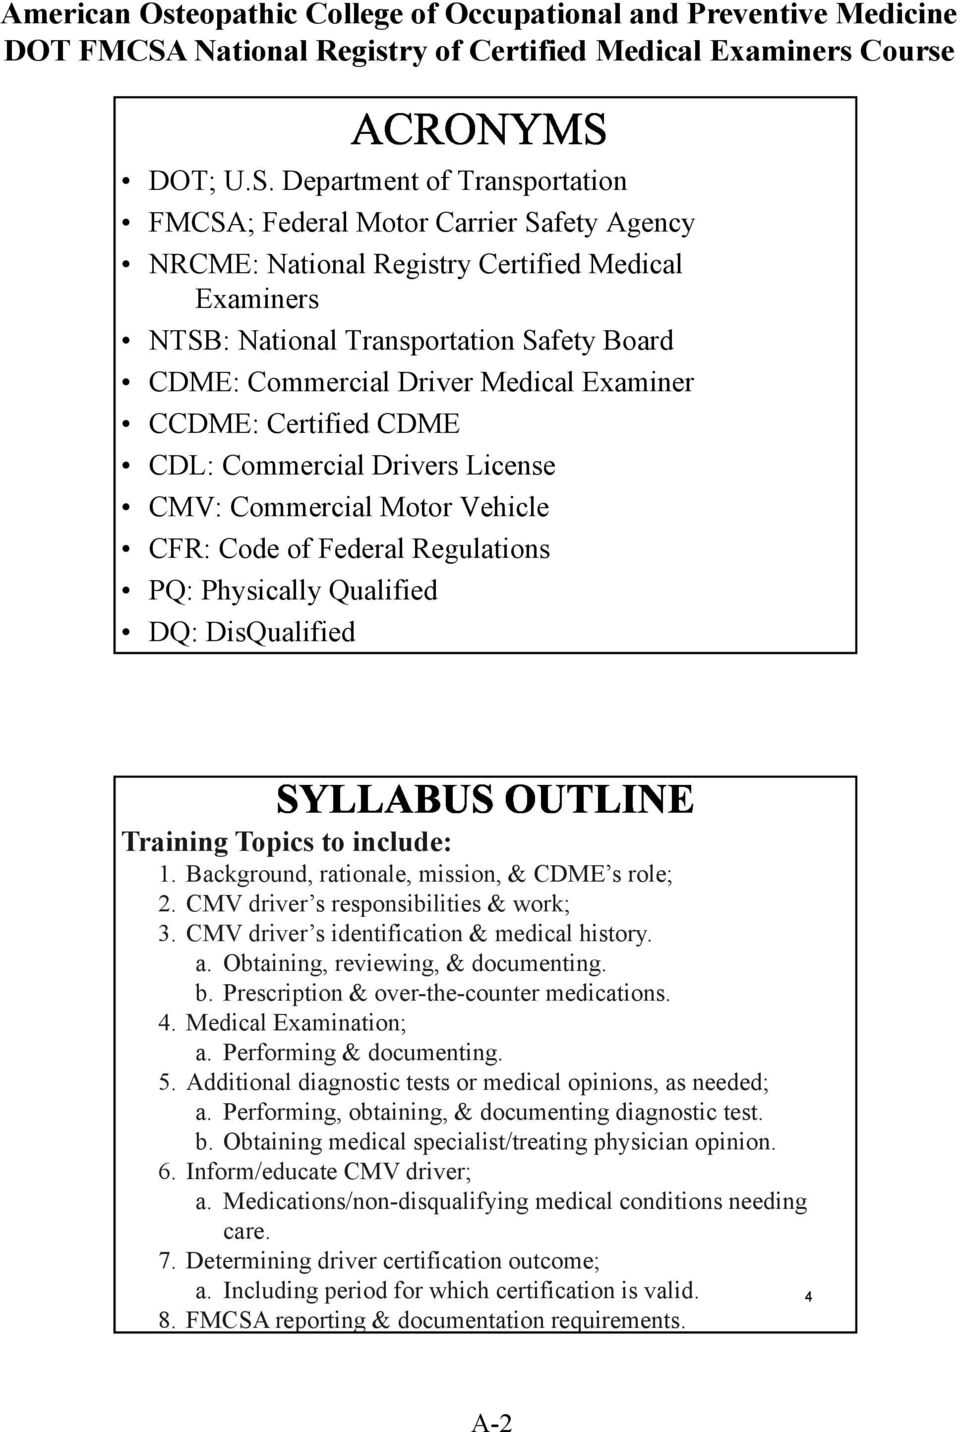 Federal Motor Carrier Safety Agency (FMCSA) National